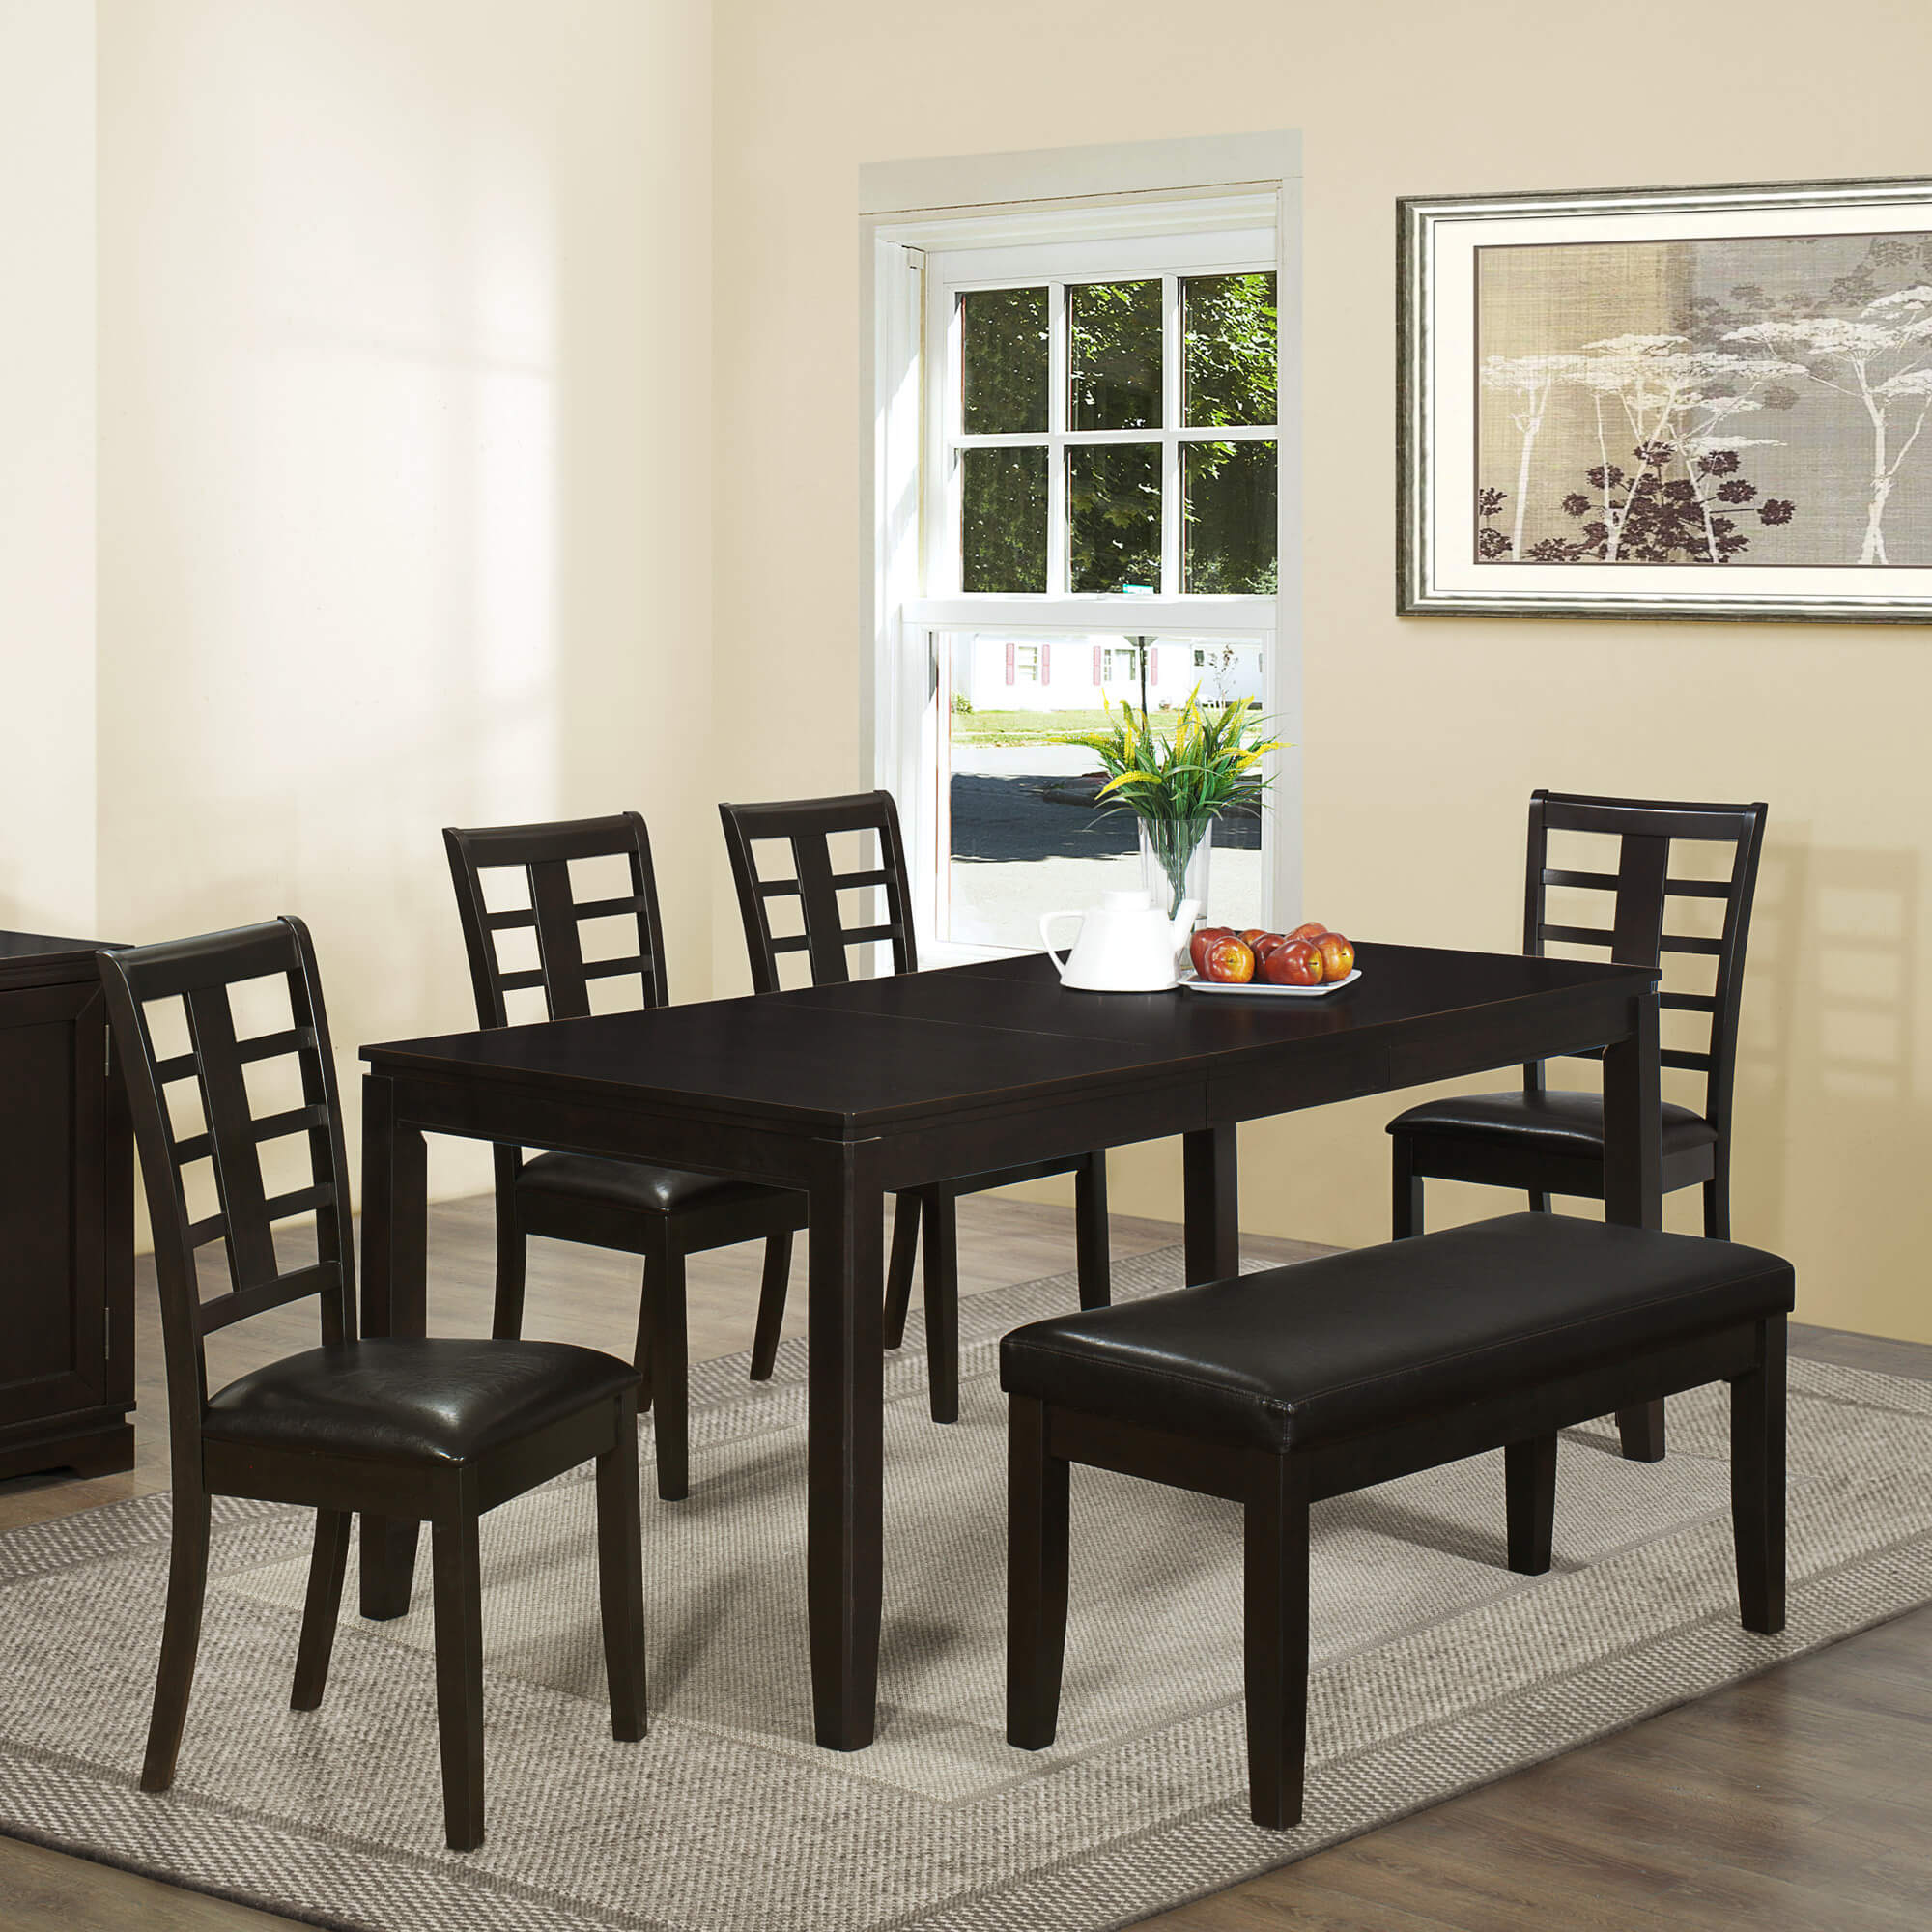 26 Big Small Dining Room Sets With Bench Seating: 26 Big & Small Dining Room Sets With Bench Seating